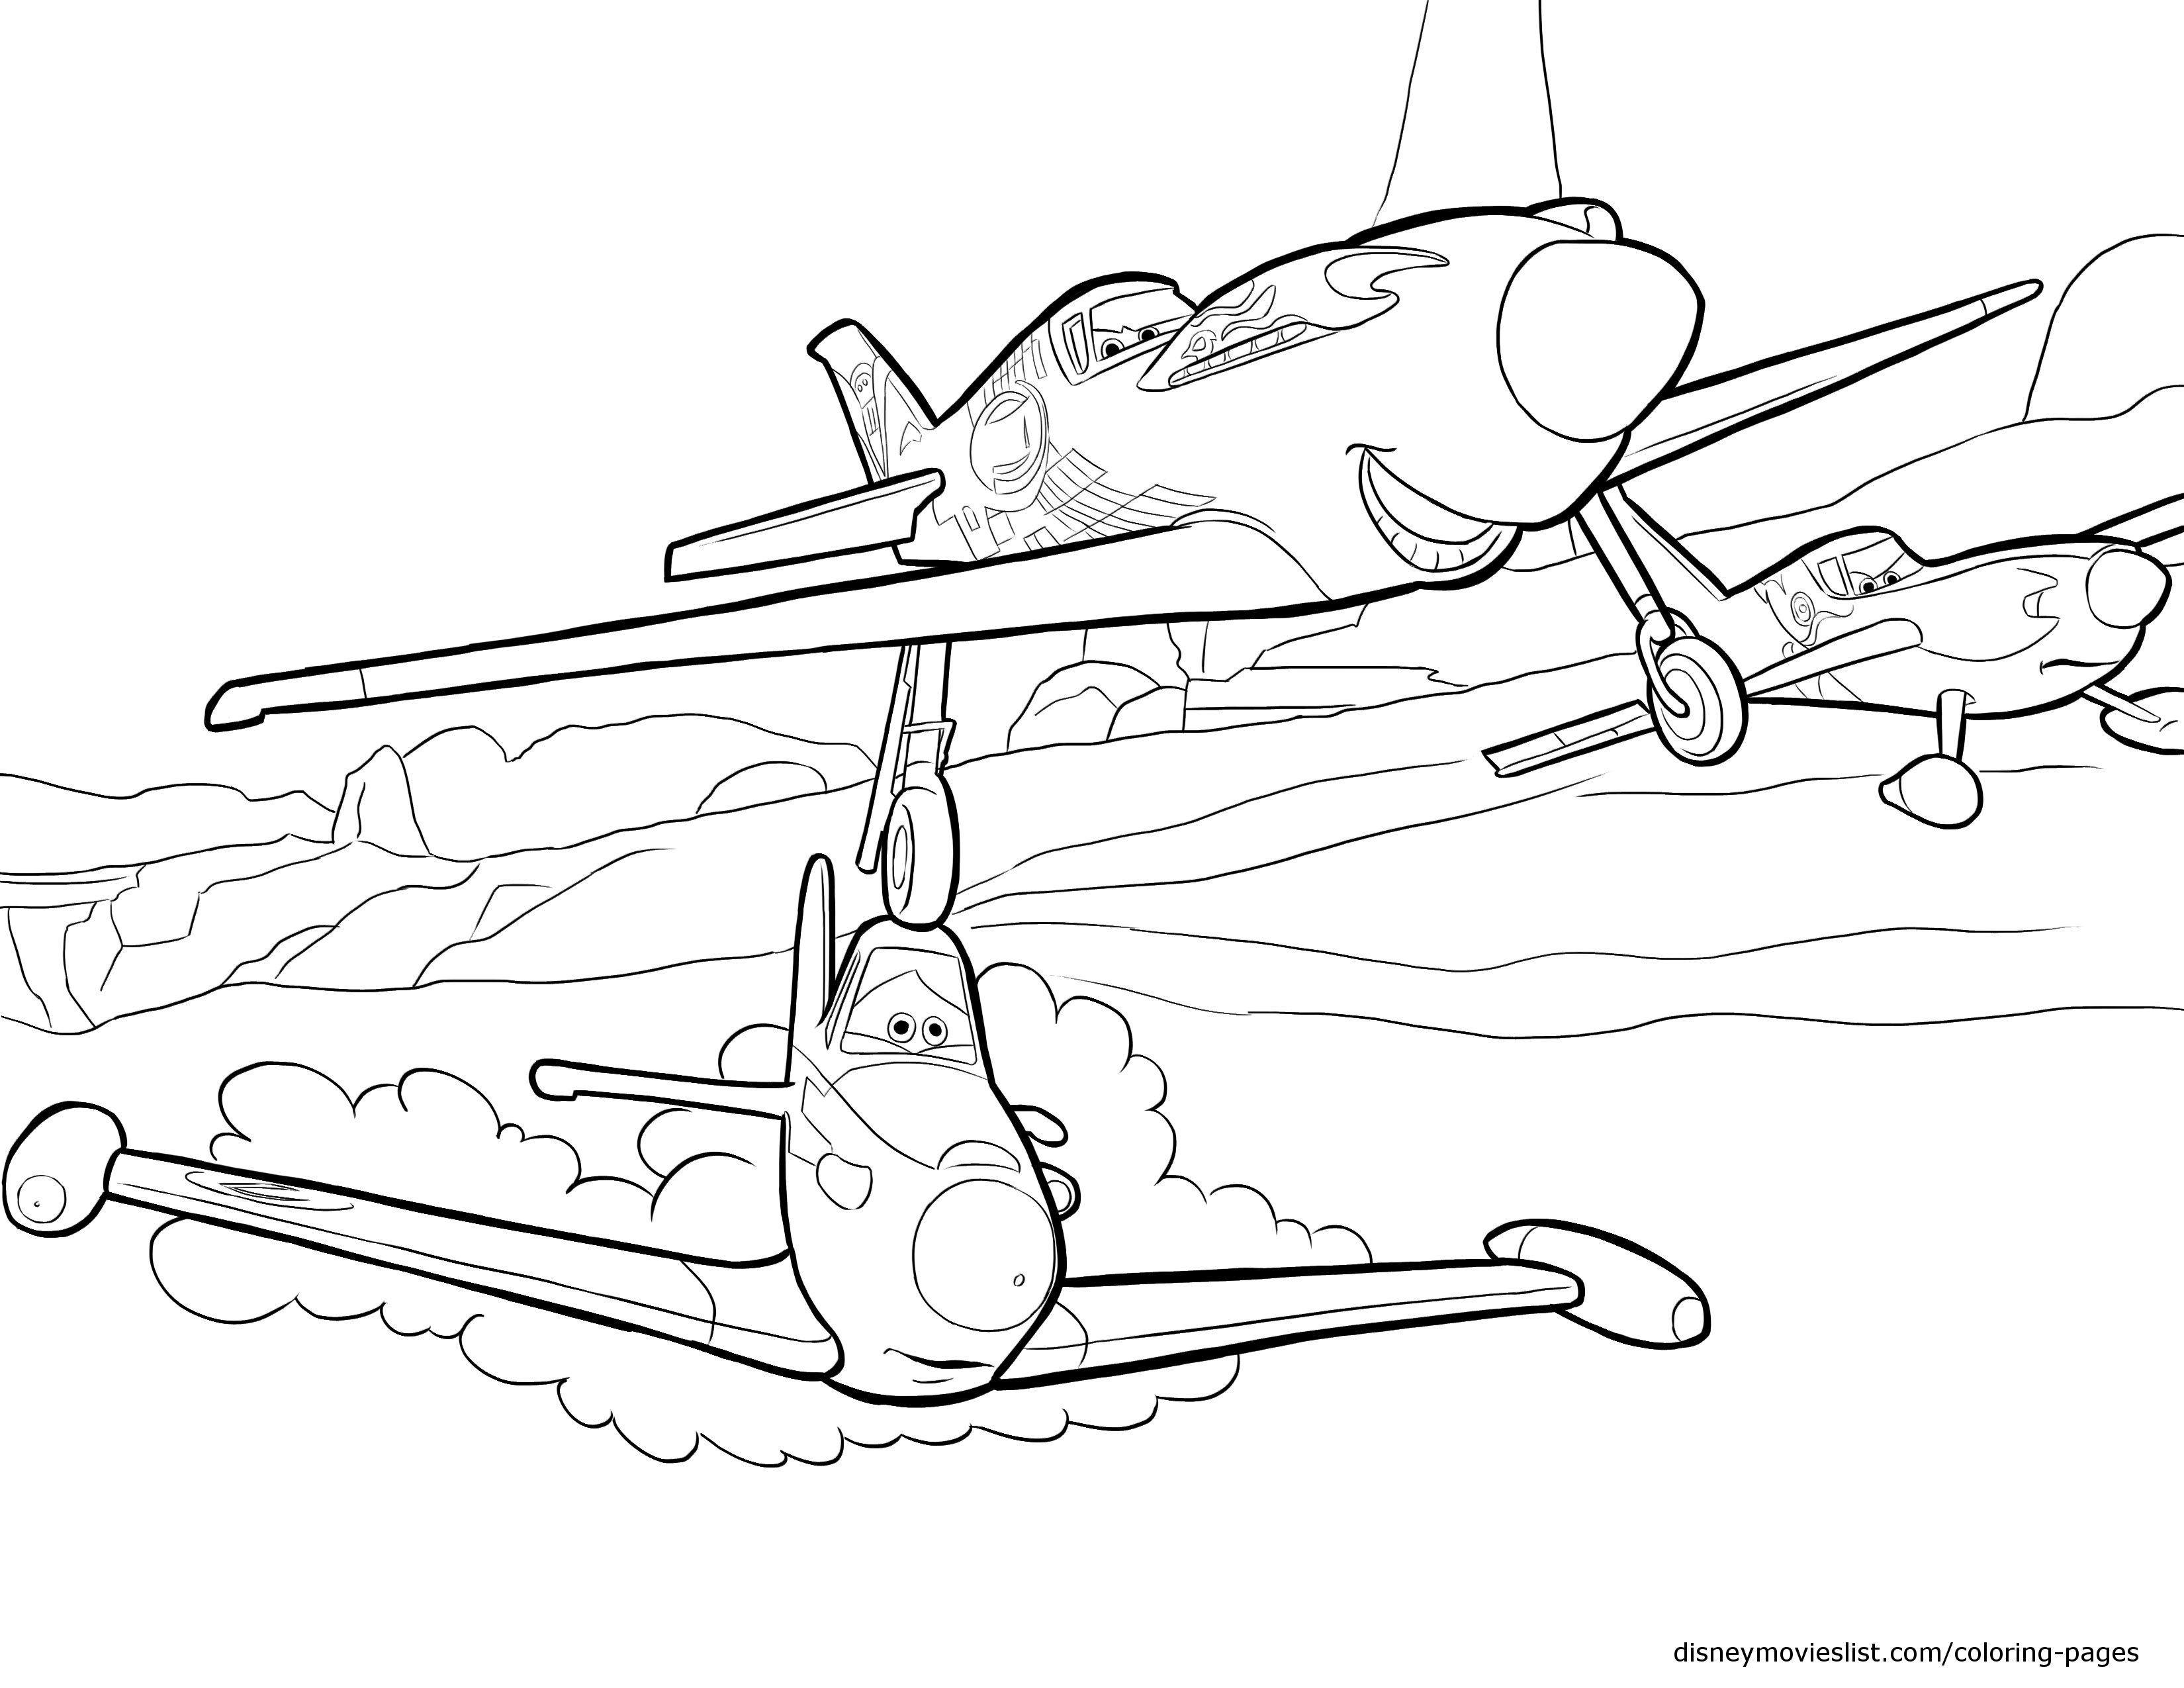 3300x2550 Fortune Airplane Pictures To Print Plane Coloring Page Cheap